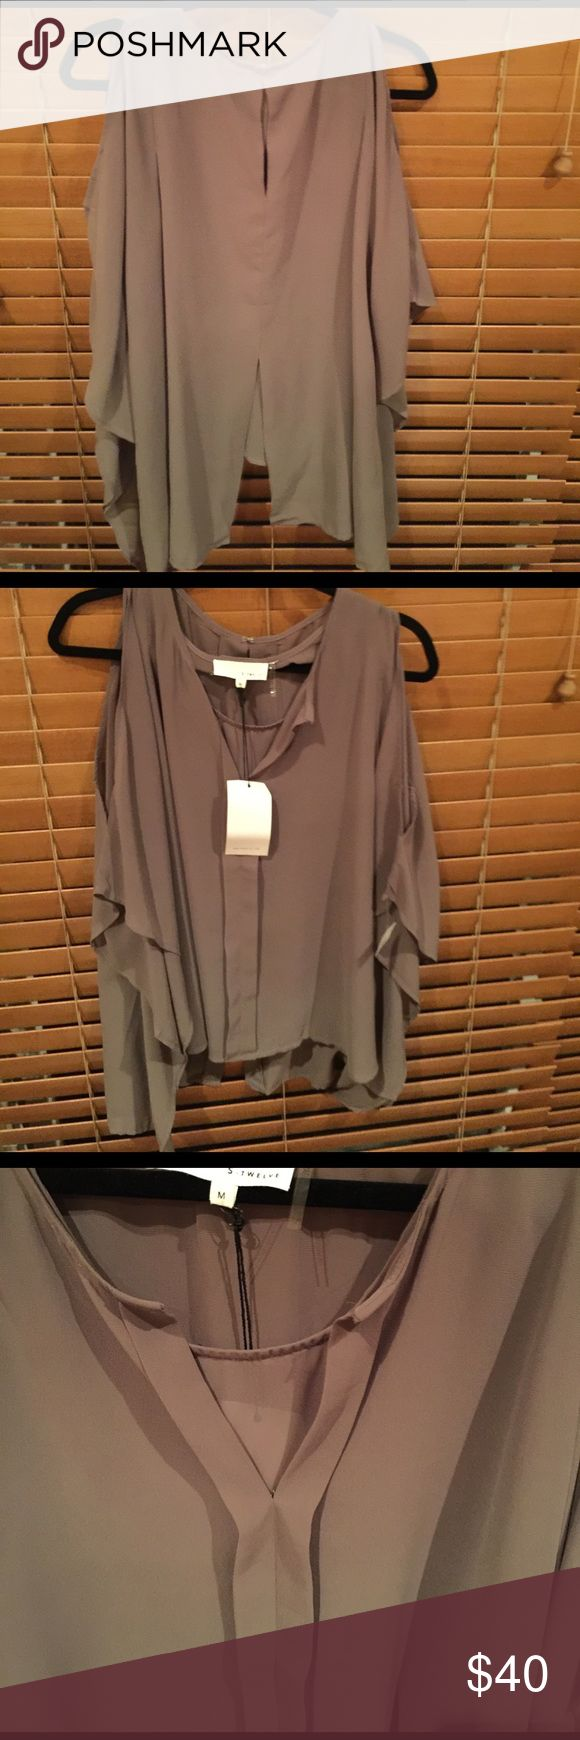 Taupe cold shoulder Blouse with built in tank top Taupe Blouse never worn. Sheer but not see through fabric. Has a tank built. From Apricot Lane S Twelve Tops Blouses